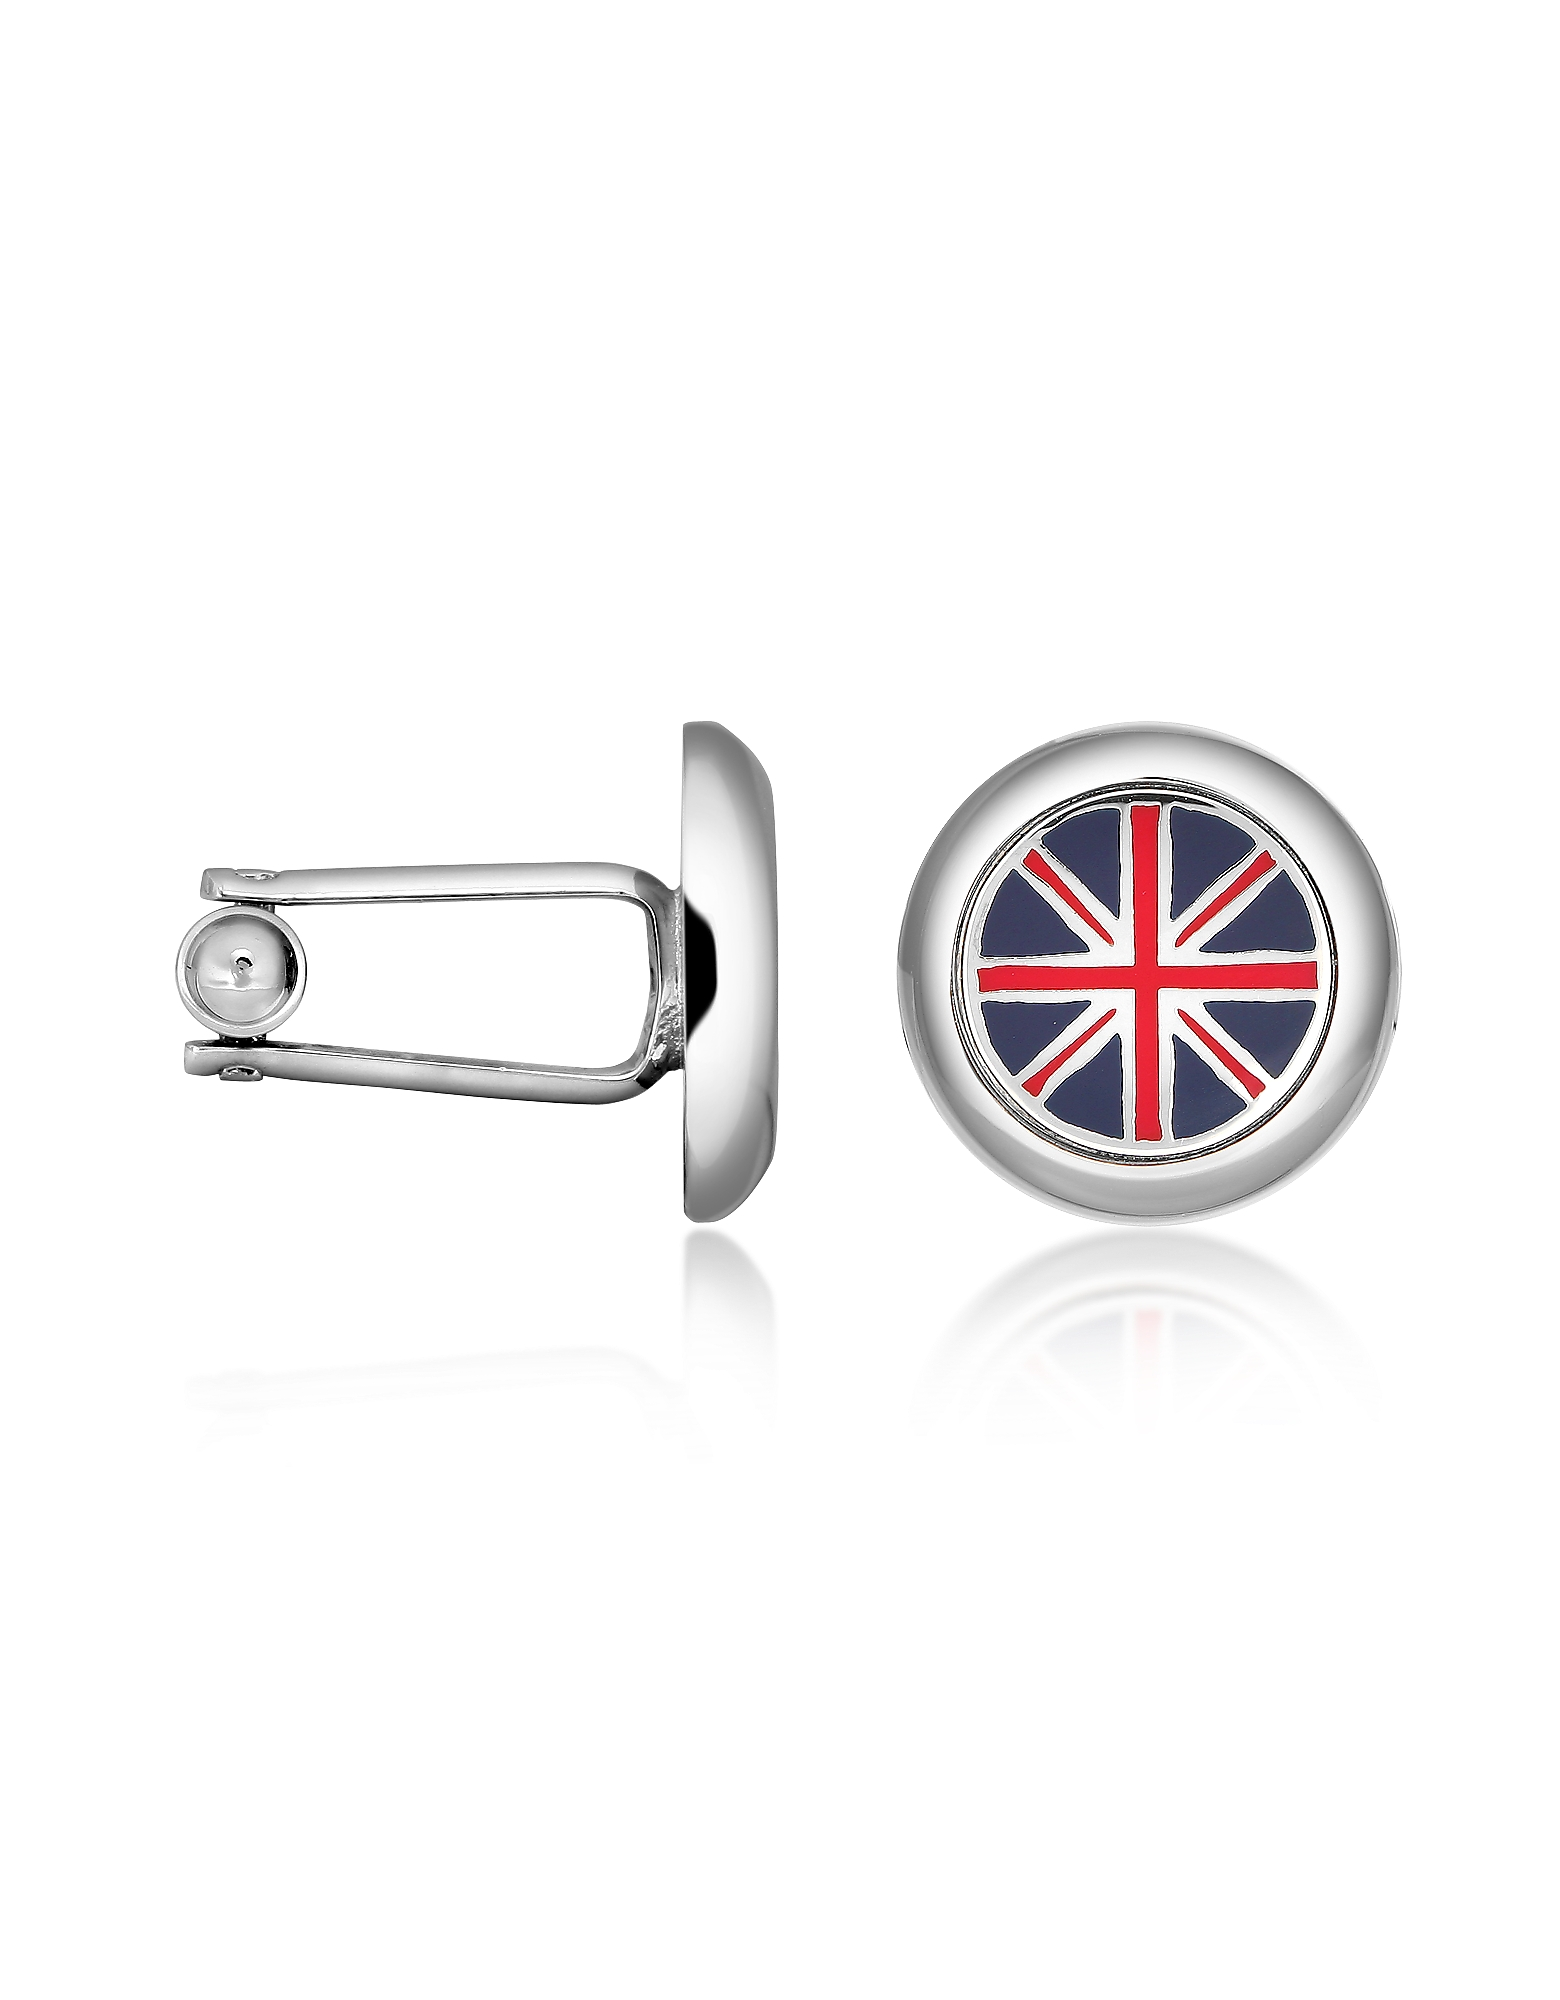 Forzieri Cufflinks, Union Jack Flag Silver Plated Round Cuff links